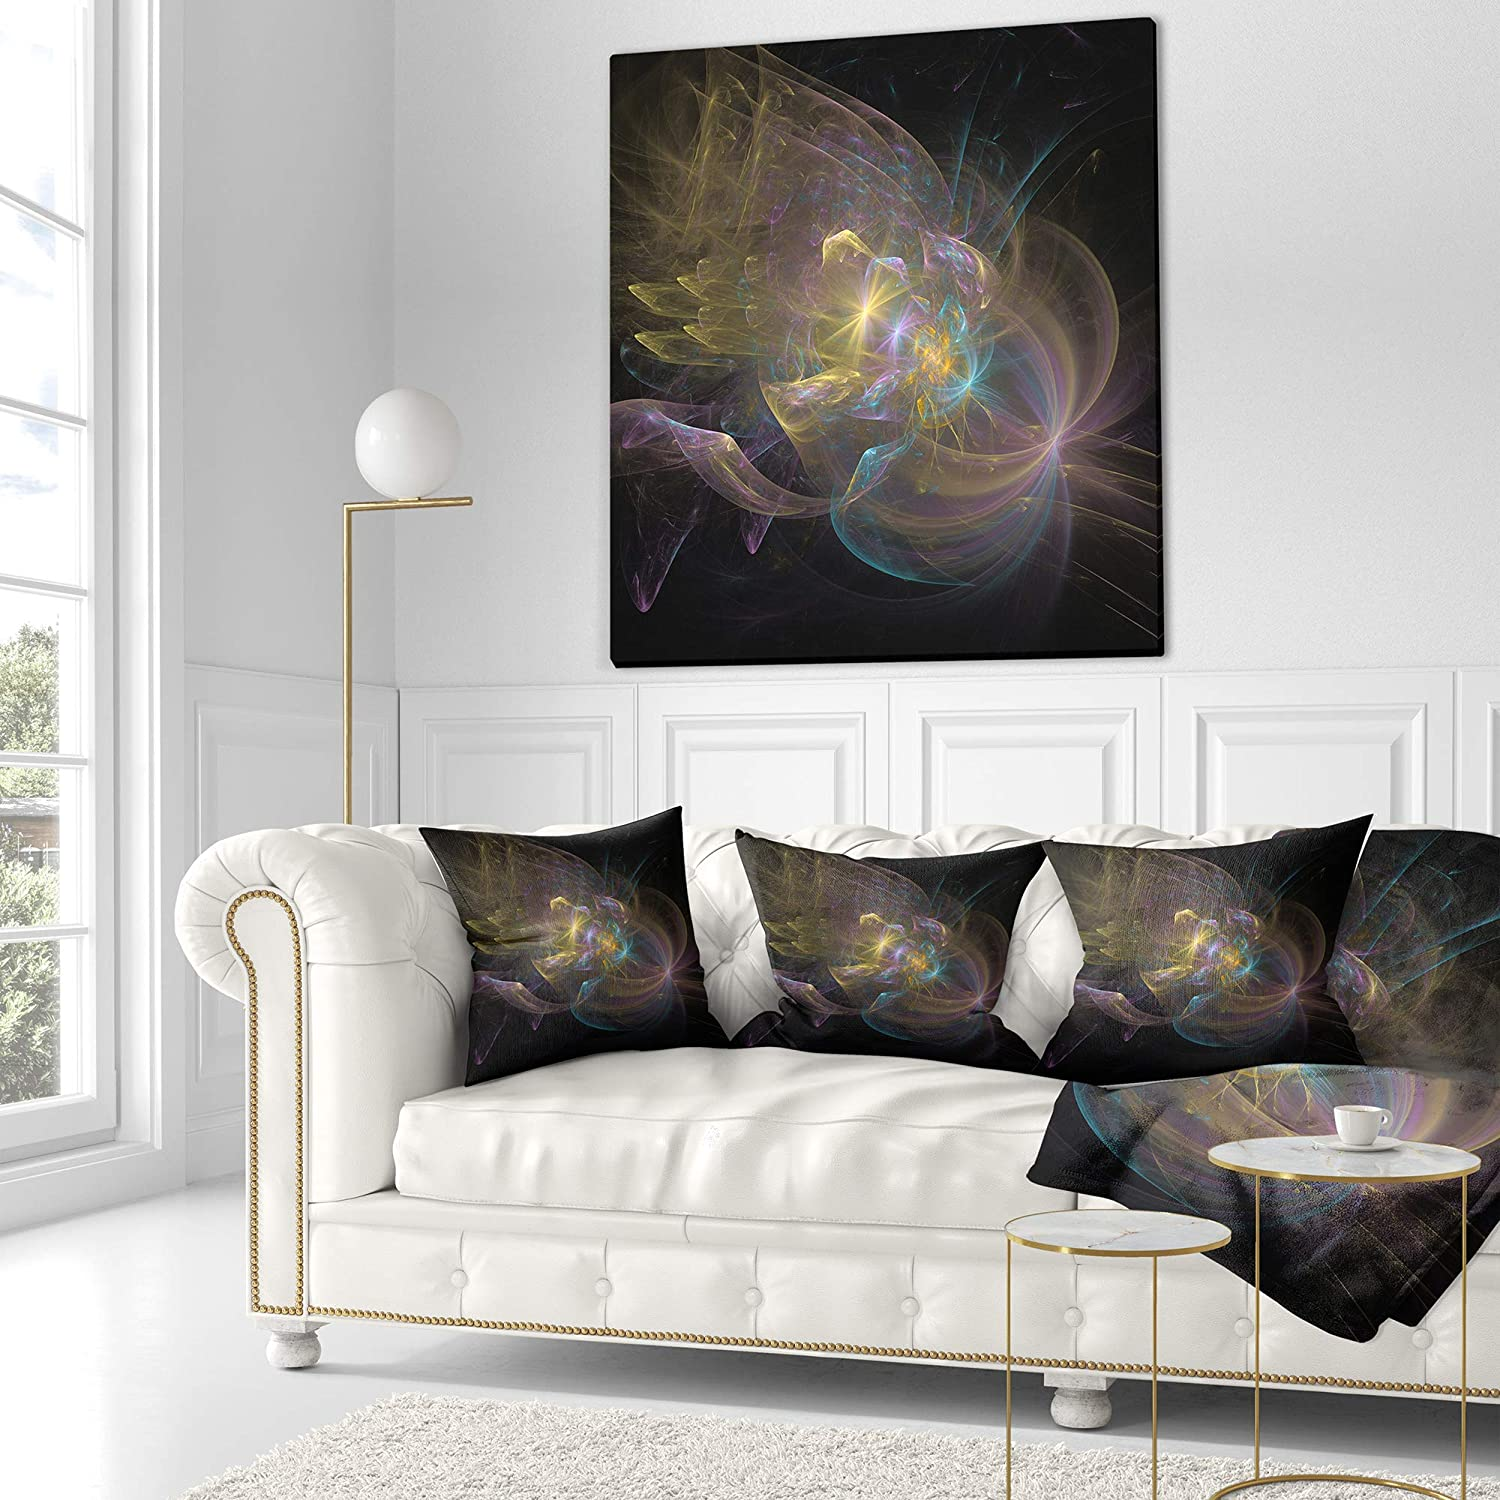 Insert Printed On Both Side Designart CU14480-26-26 Beautiful Slice of Agate on Black Abstract Cushion Cover for Living Room x 26 in Sofa Throw Pillow 26 in in